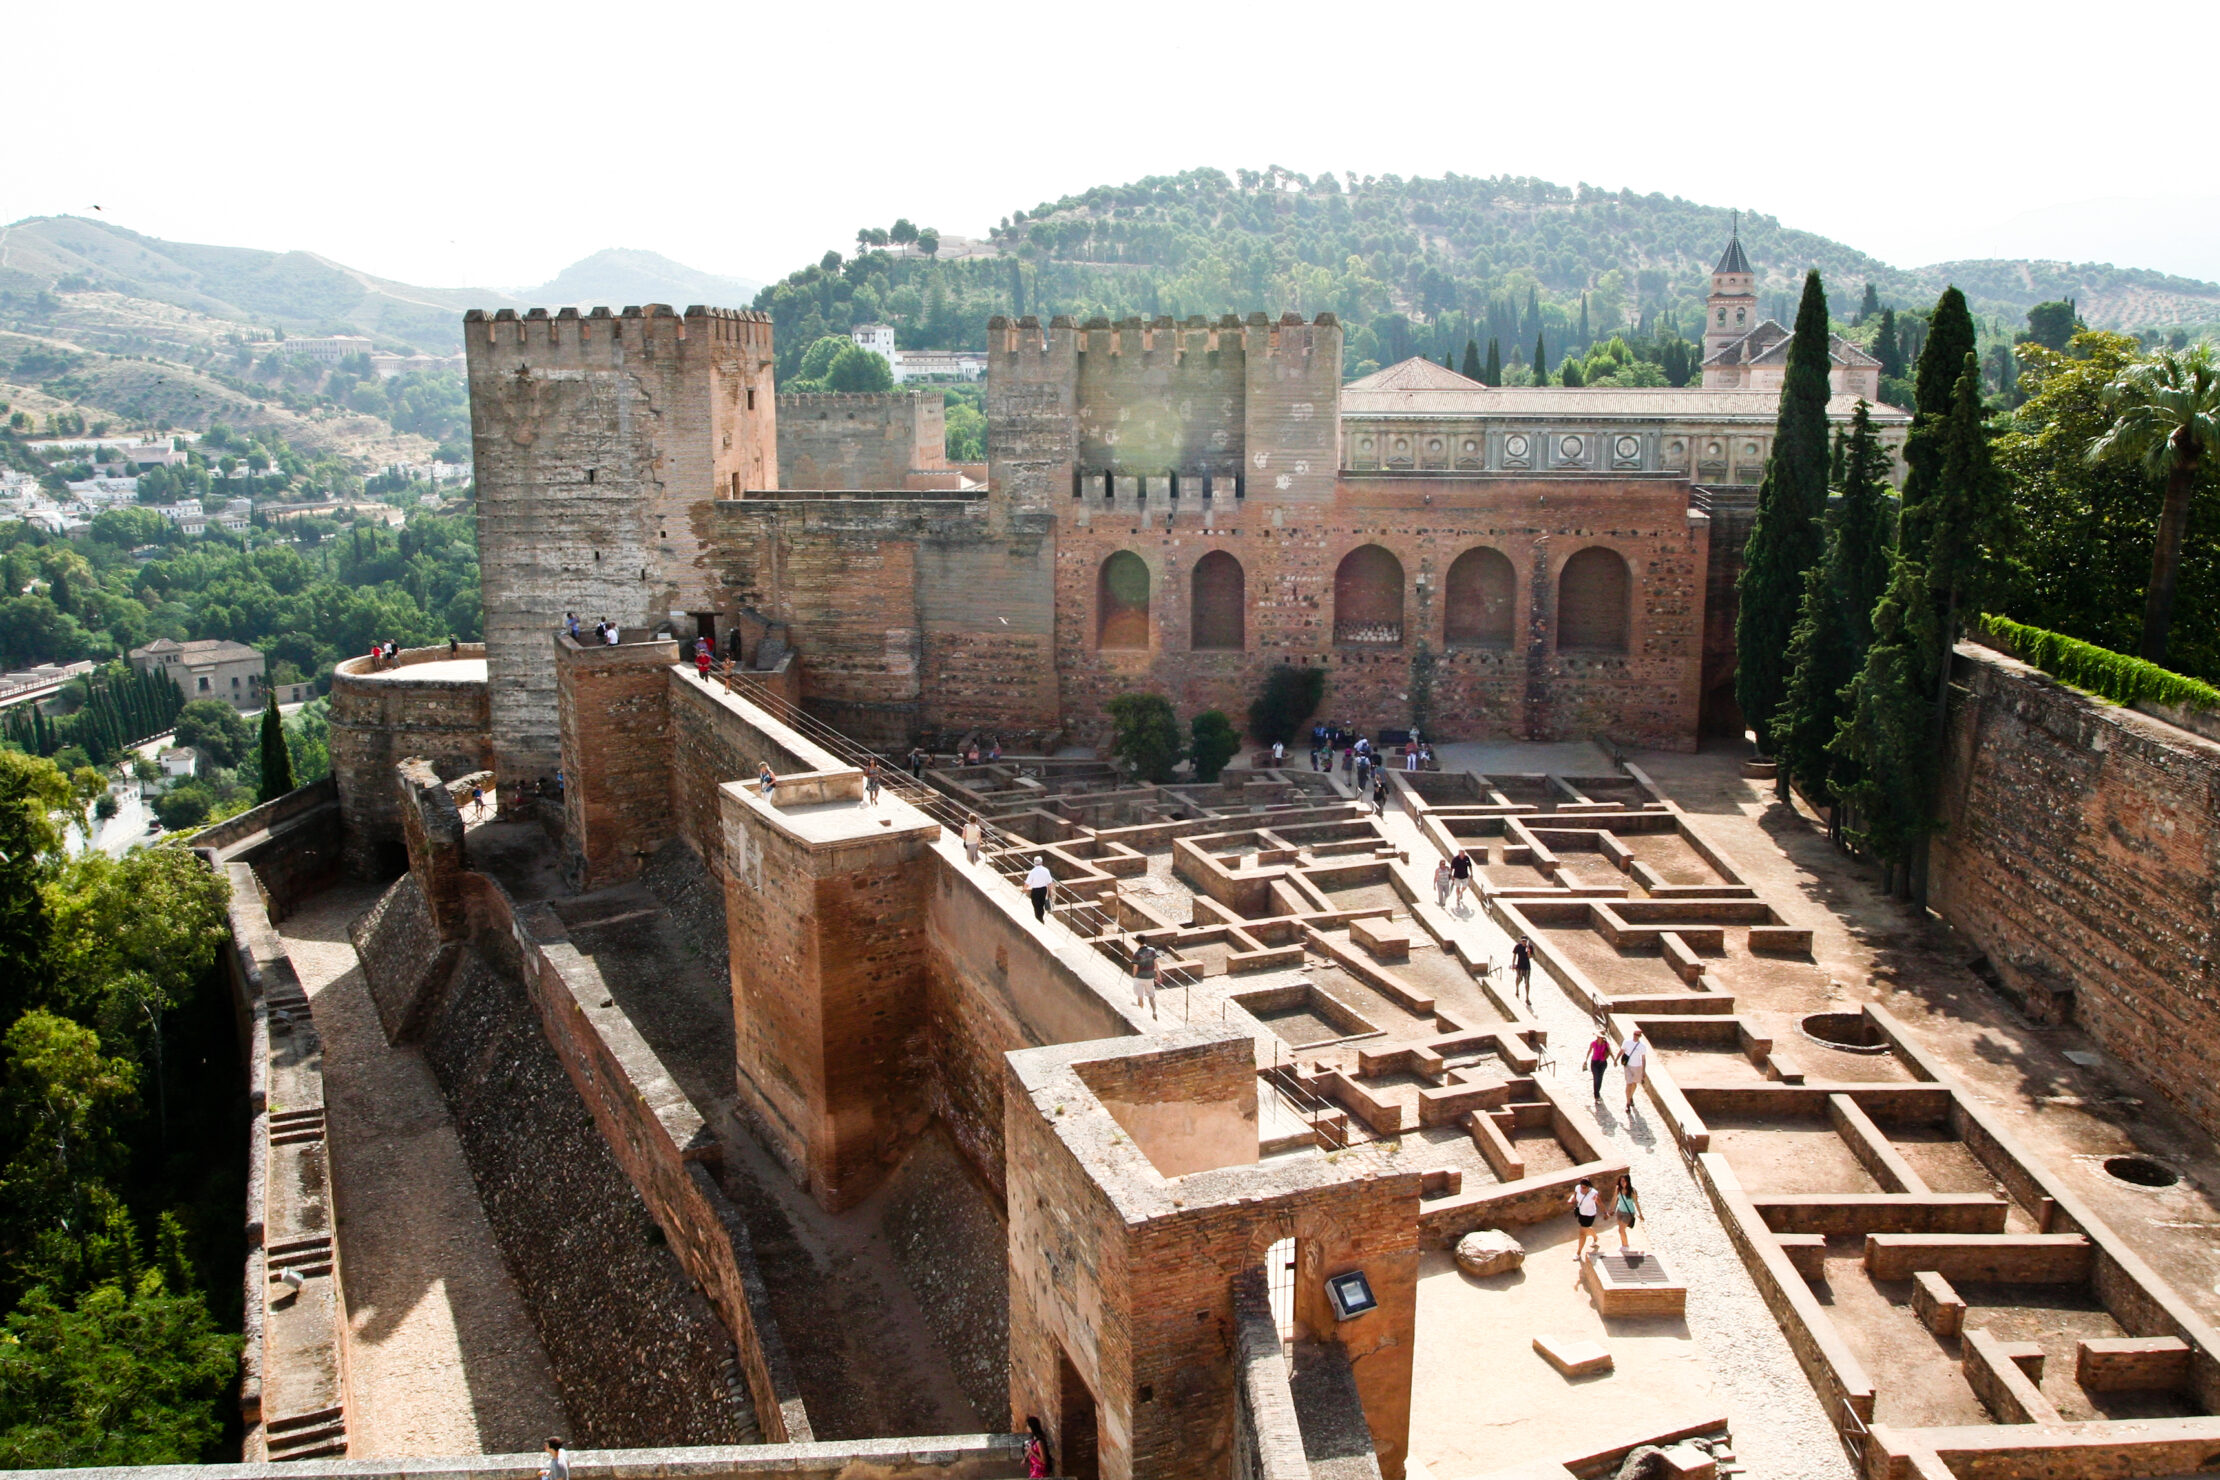 The Alcazaba of the Alhambra